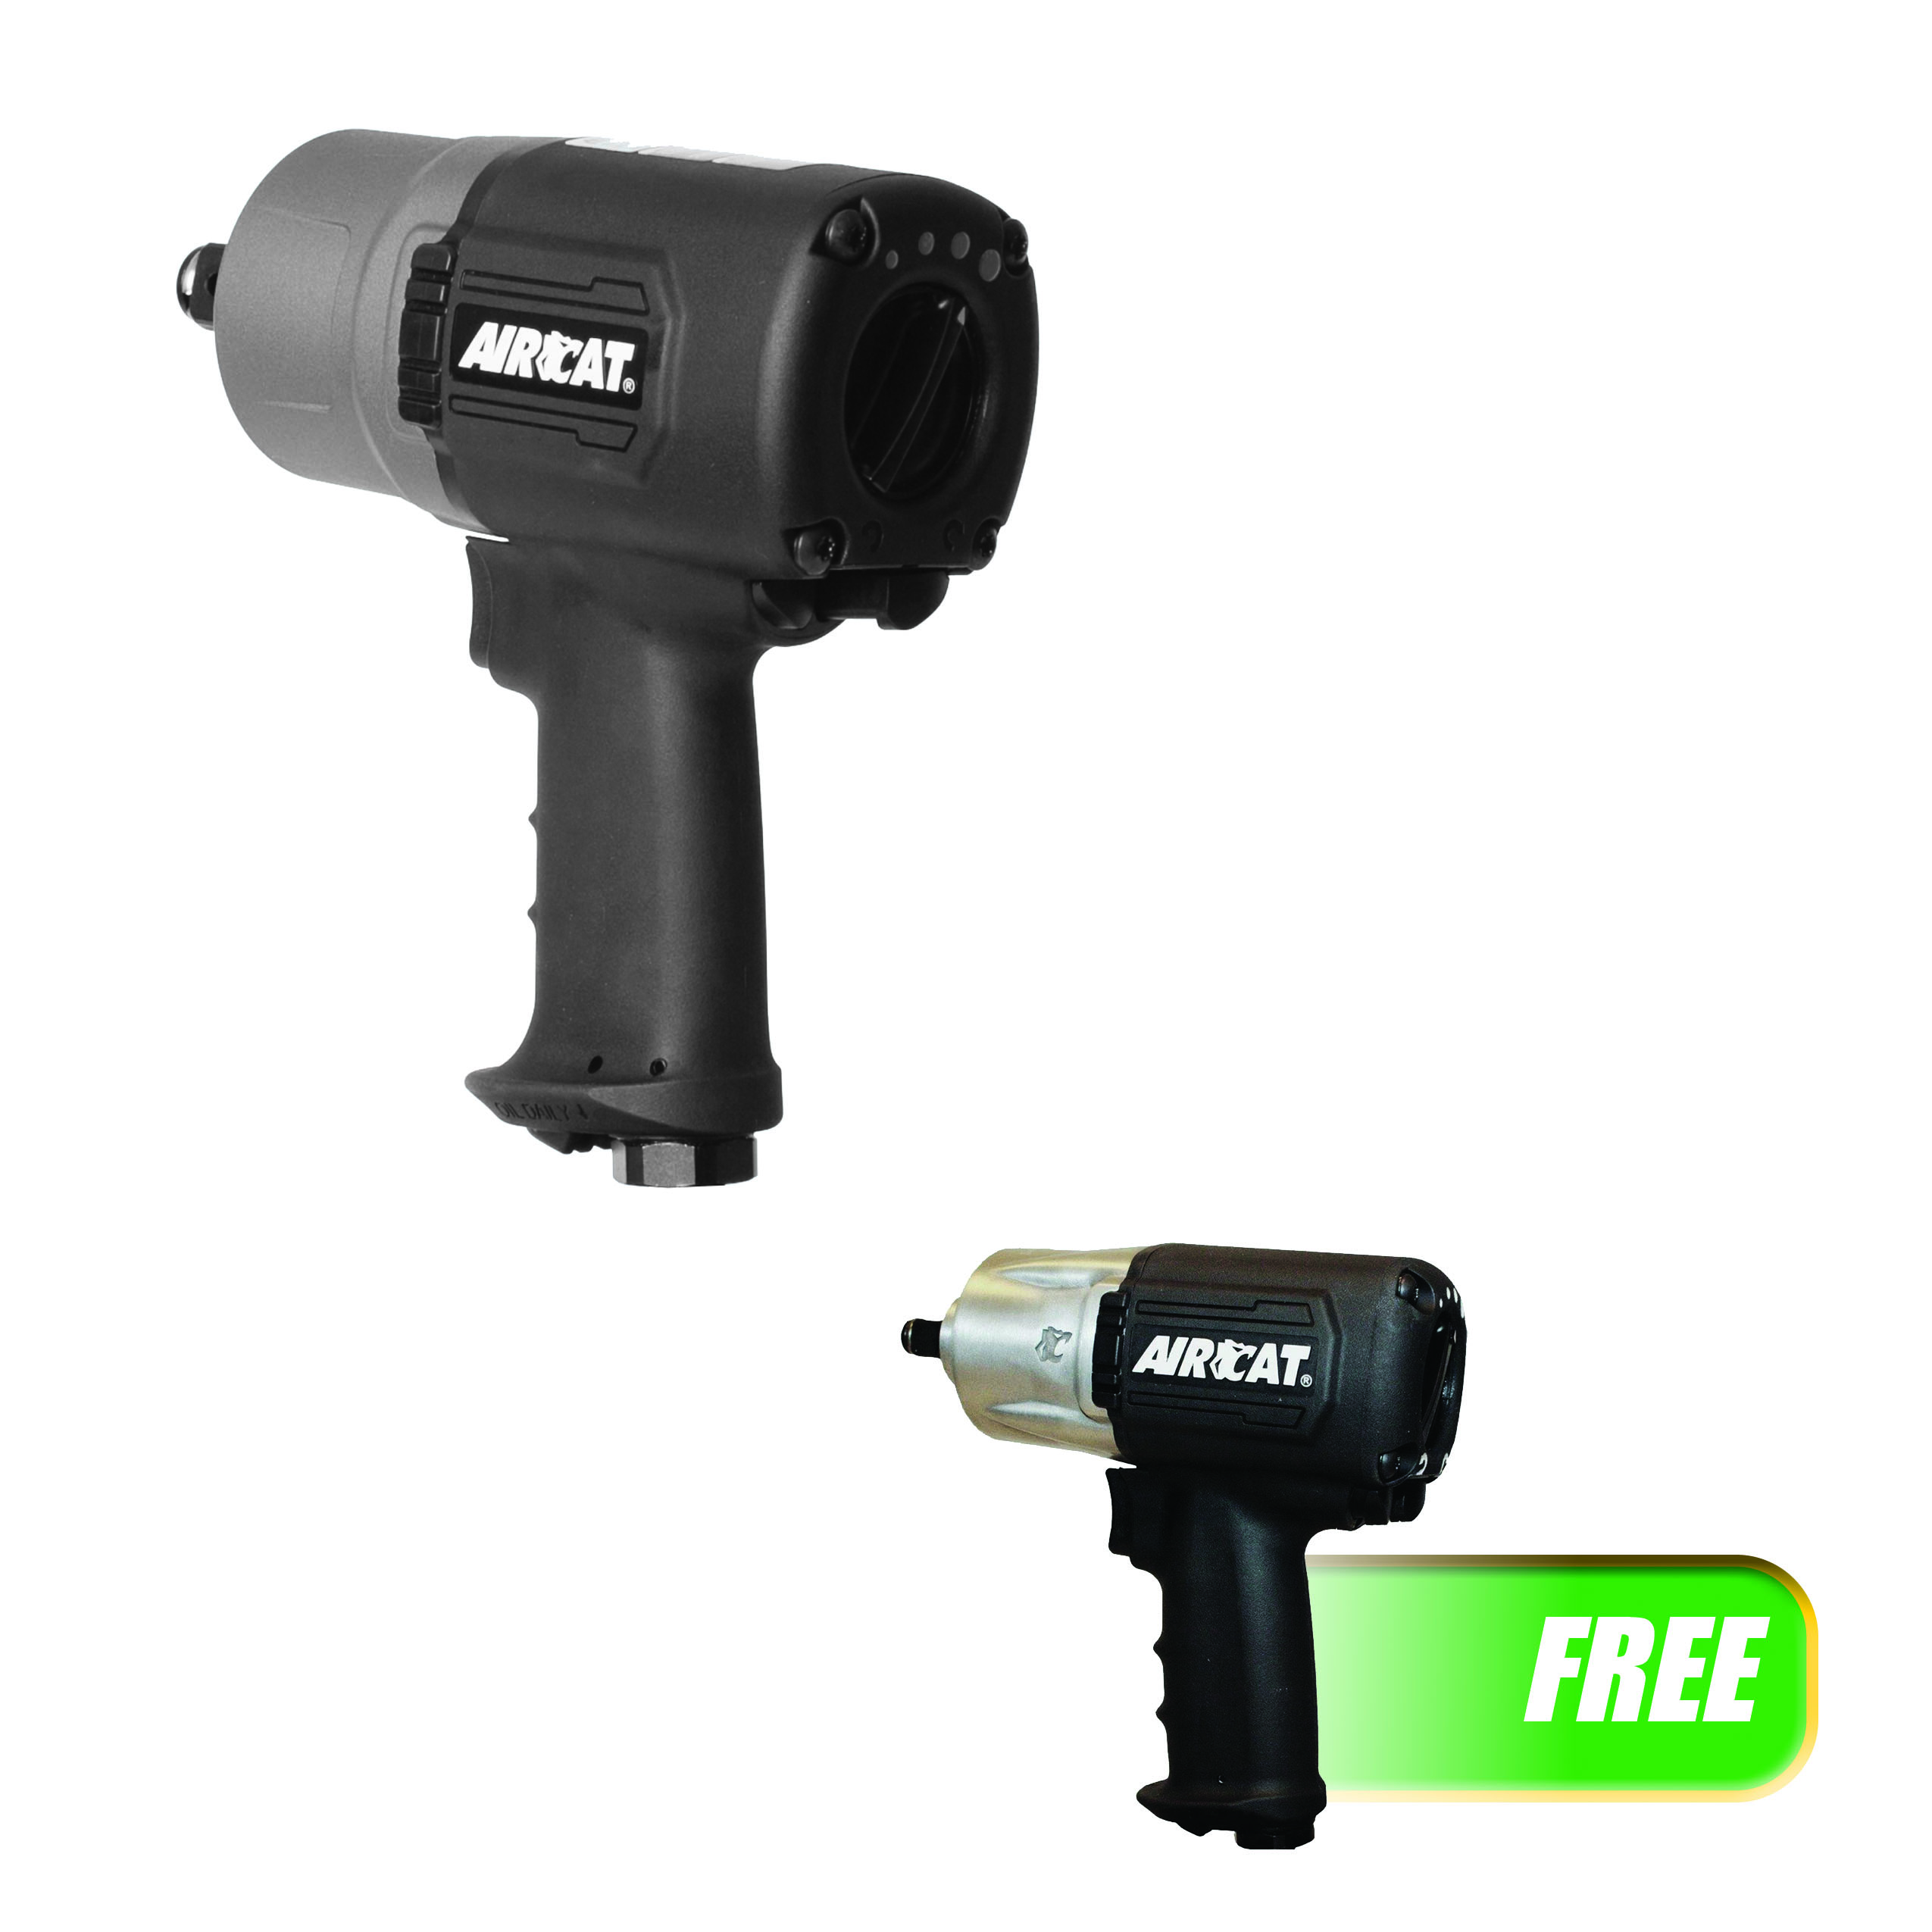 """AIRCAT 3/4"""" """"Super Duty"""" Impact Wrench W/FREE 1/2 IN Impact Wrench"""